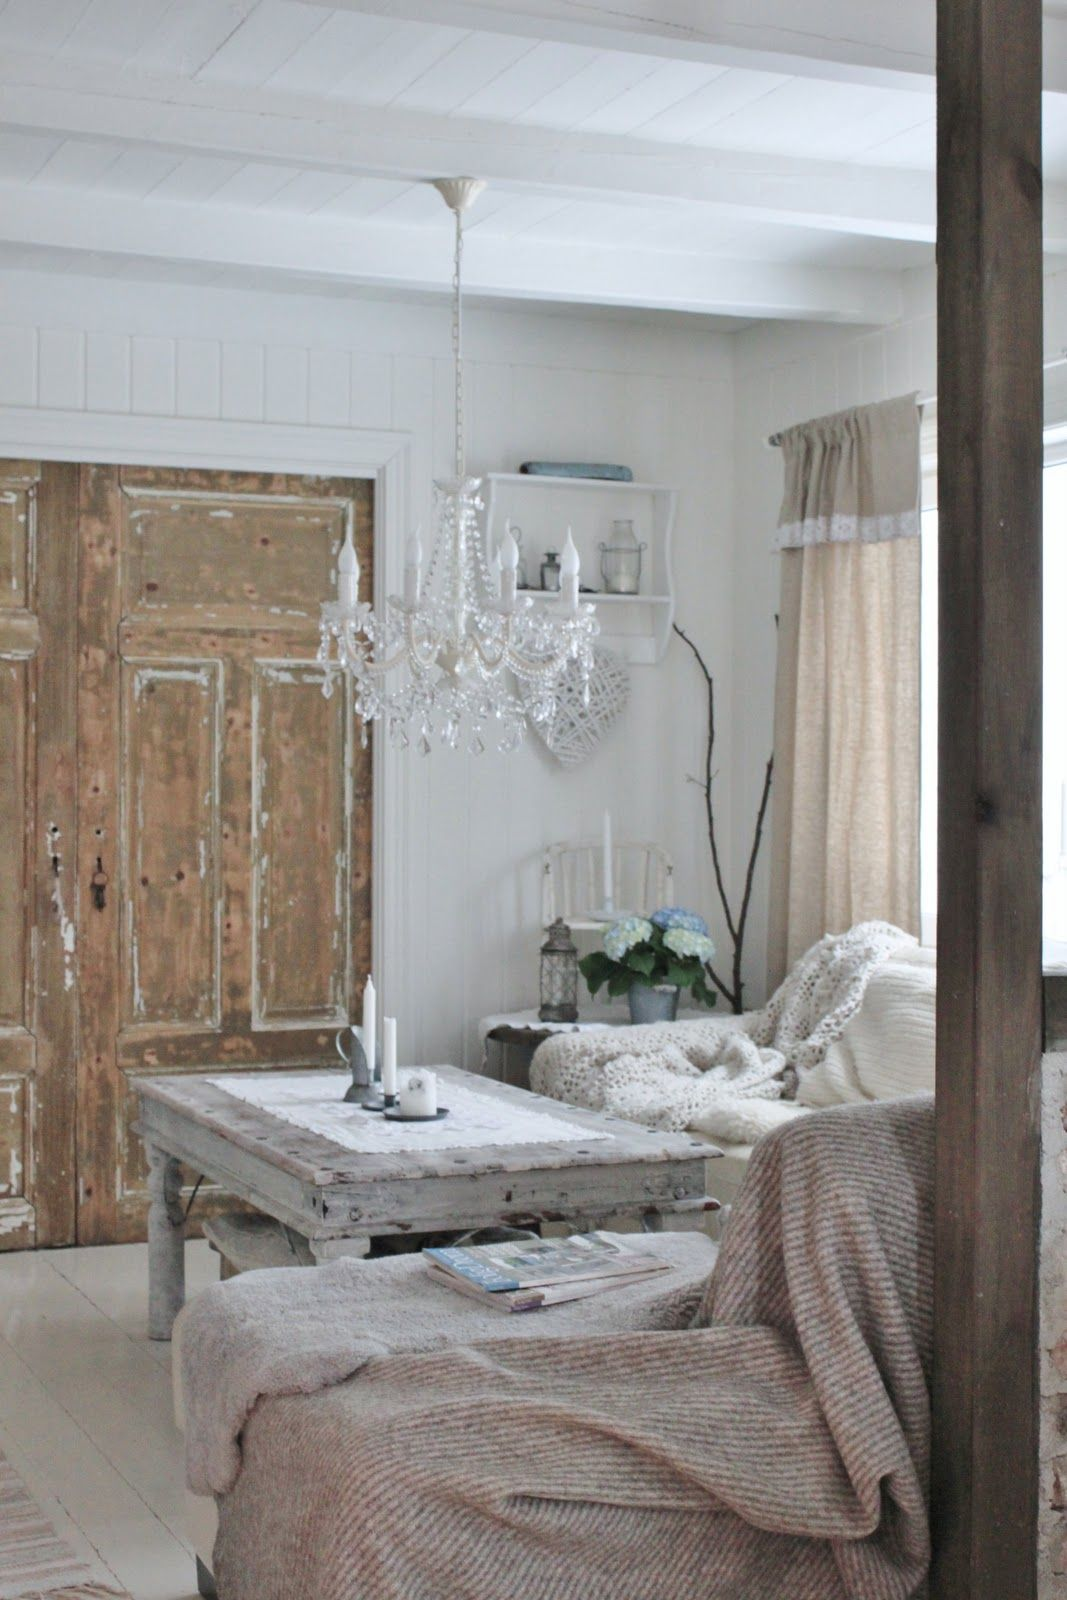 Awesome reclaimed doors and coffee table.